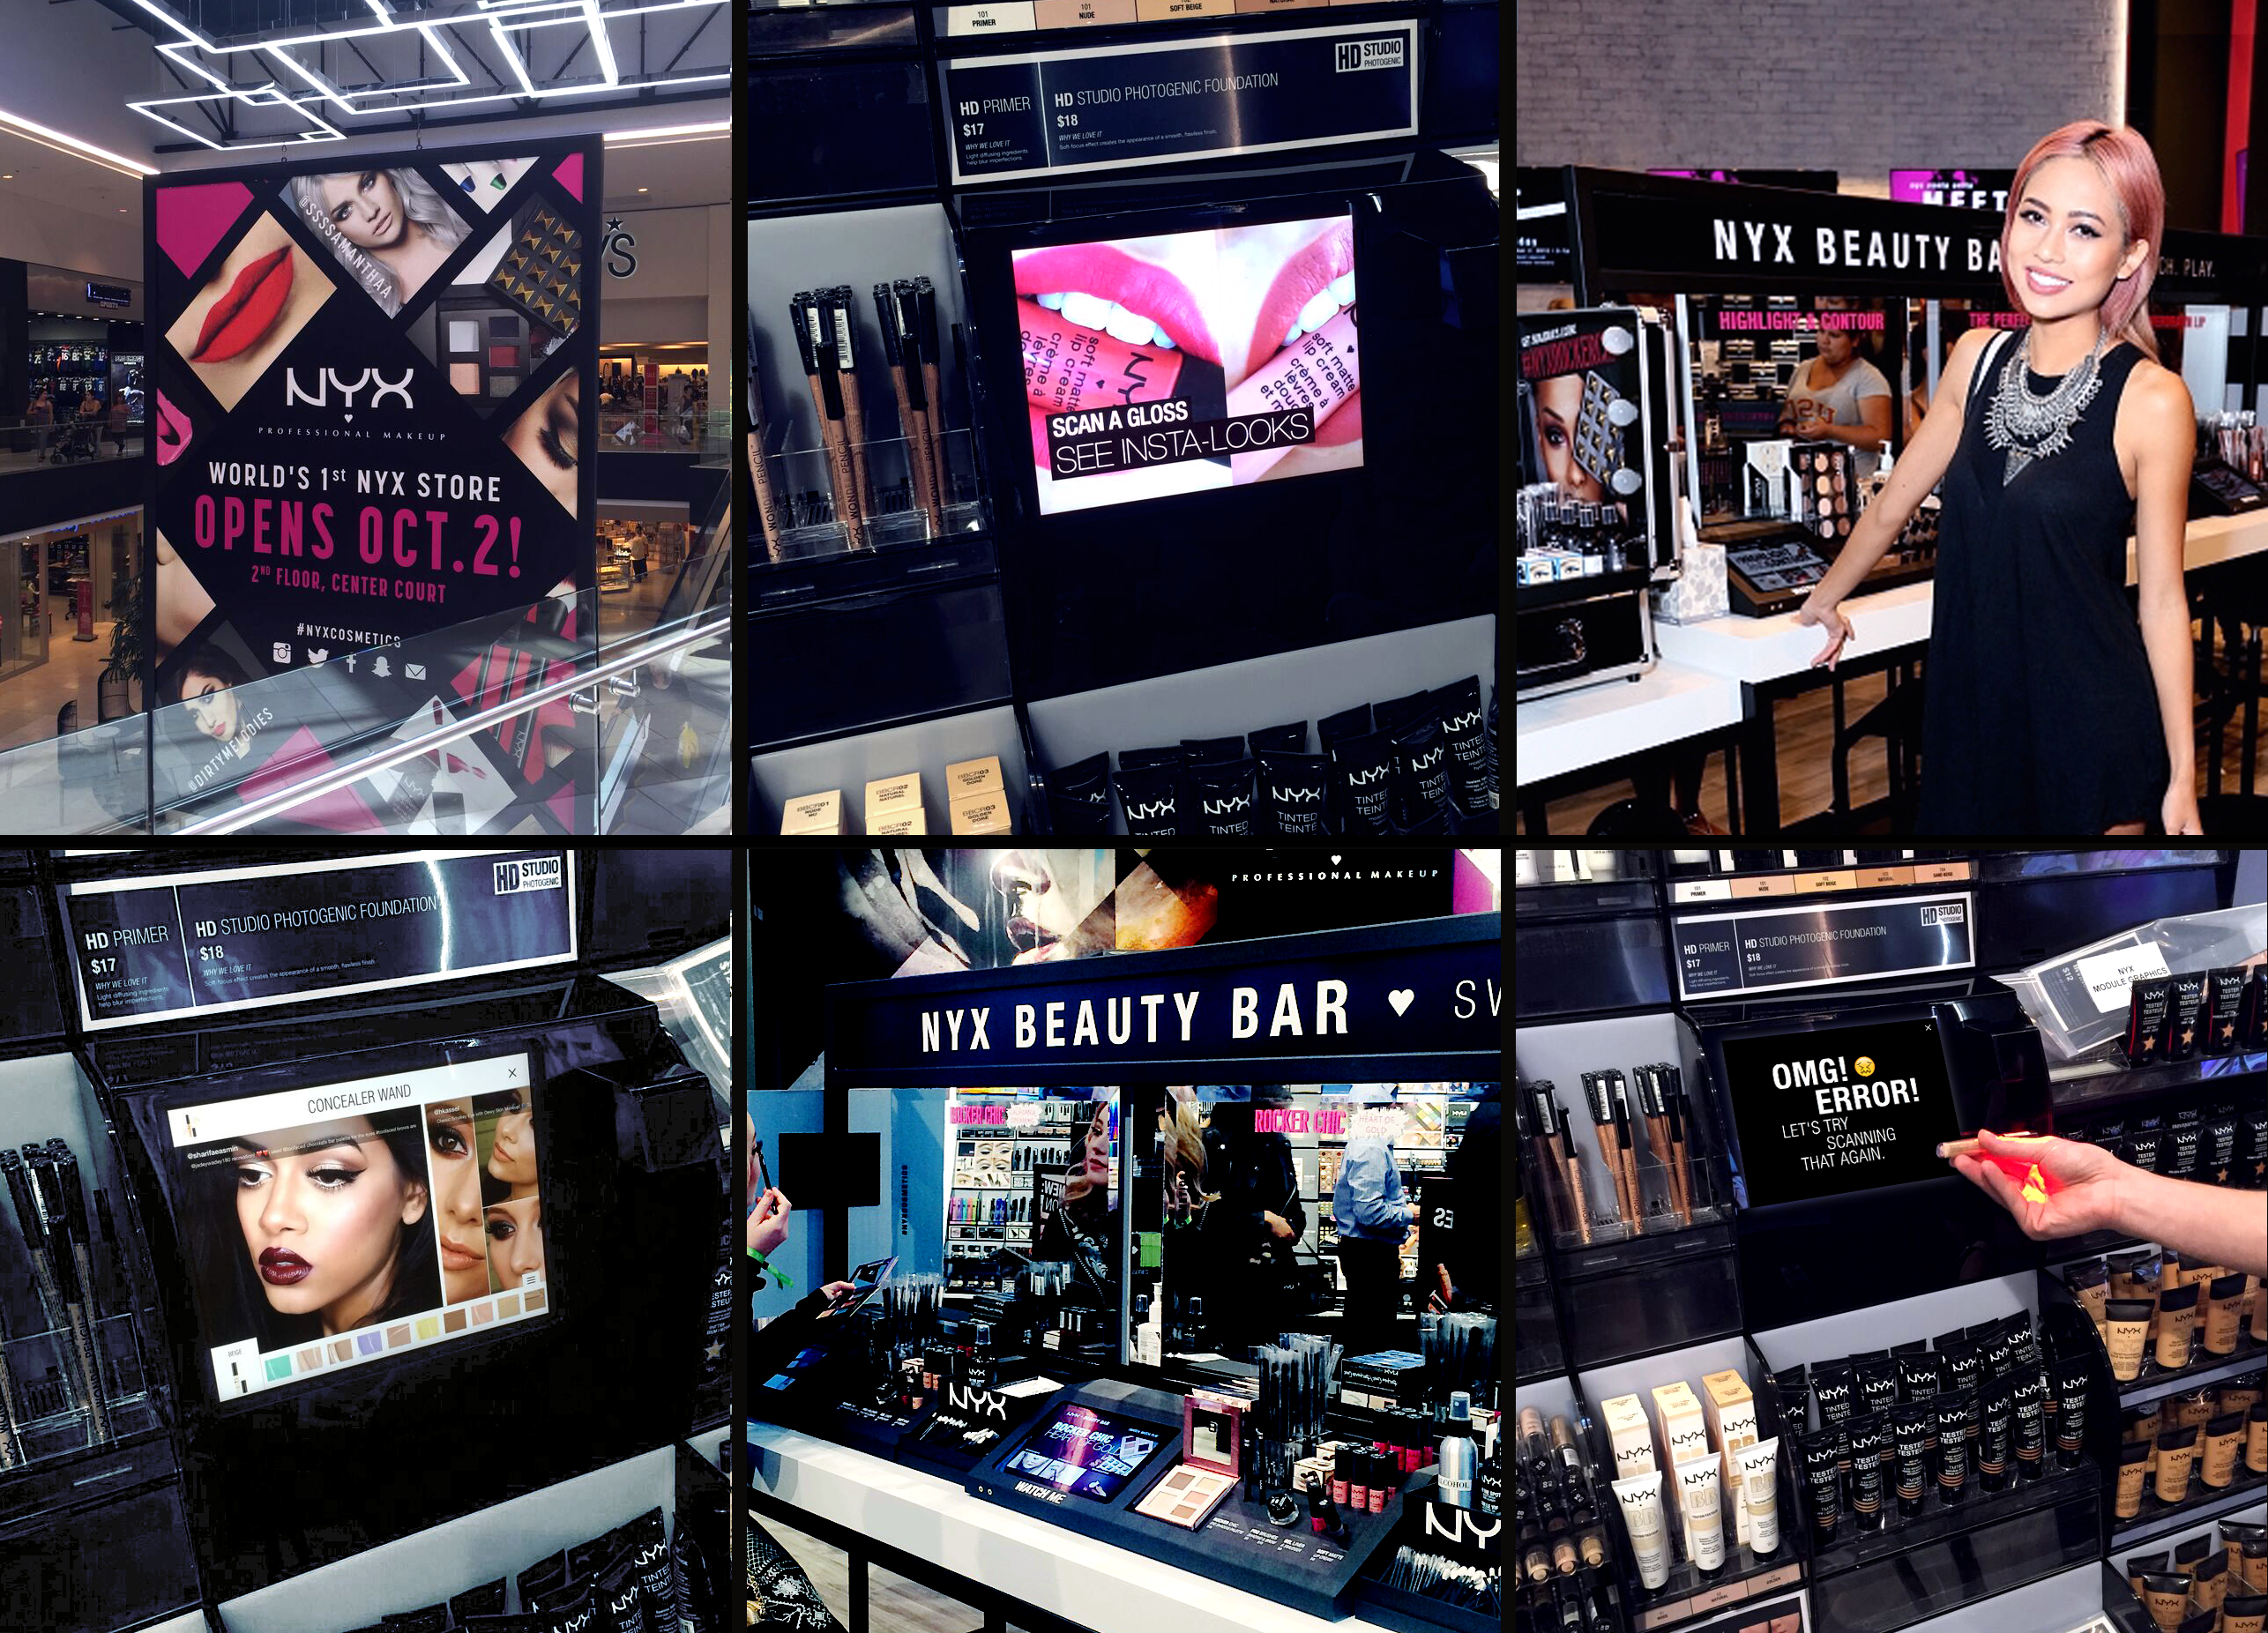 6 image collage from NYX Toronto opening